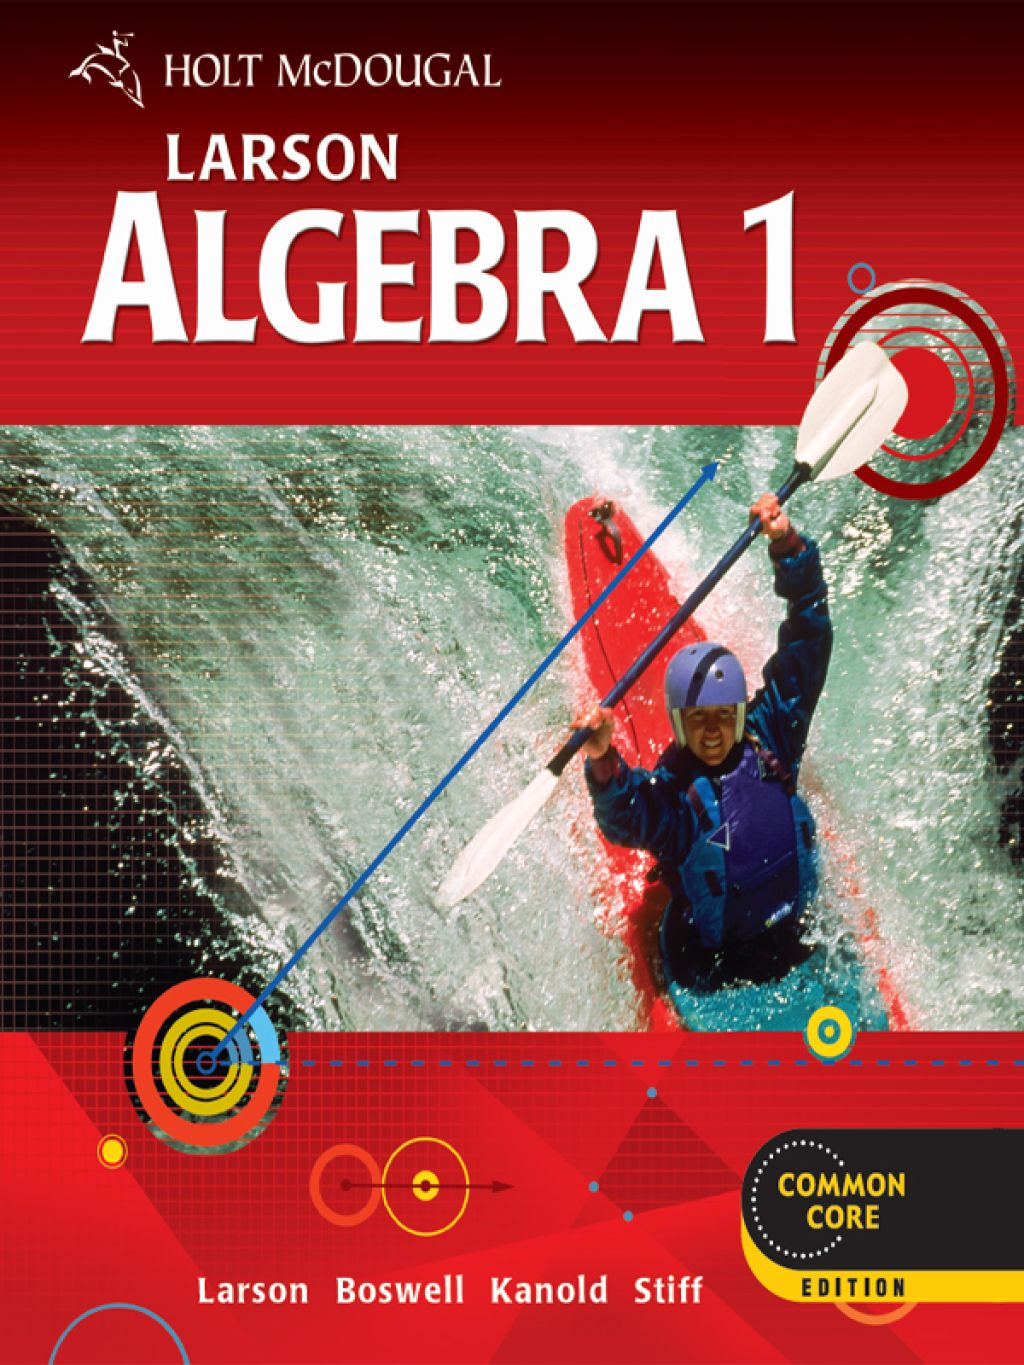 Holt Mcdougal Larson Algebra 1 Student Edition Ebook